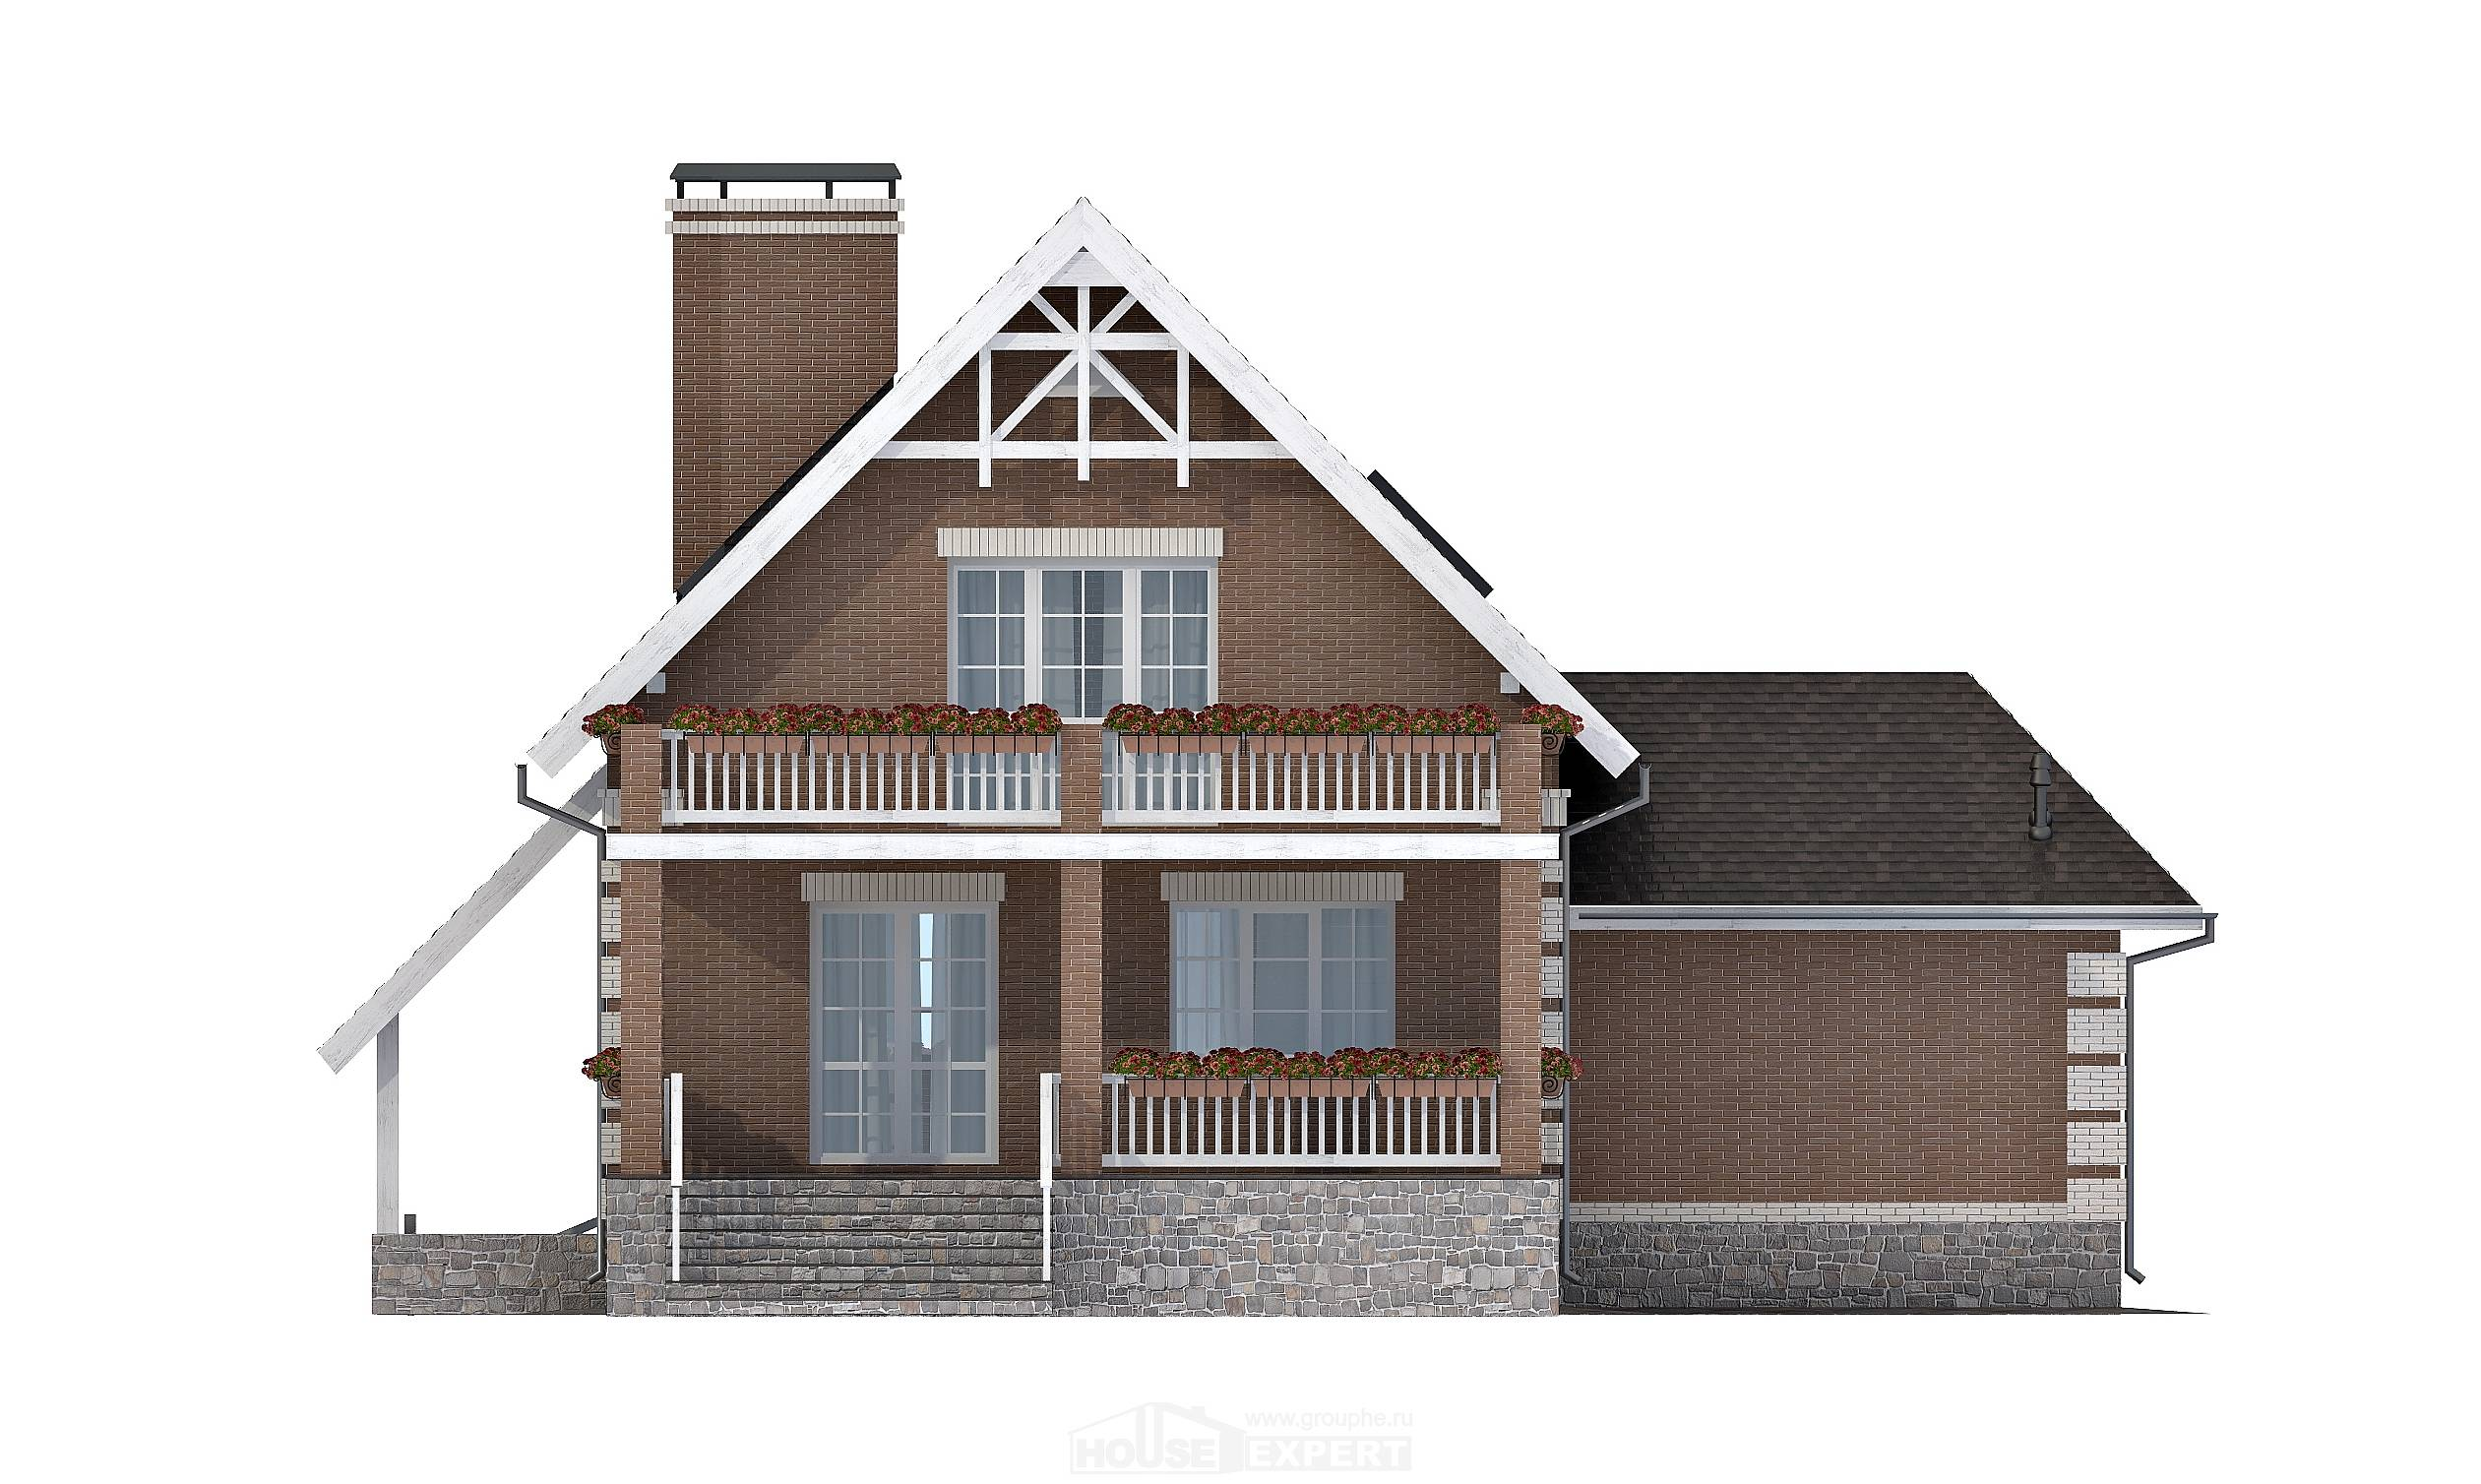 200-009-L Three Story House Plans and mansard with garage in back, modern House Plans